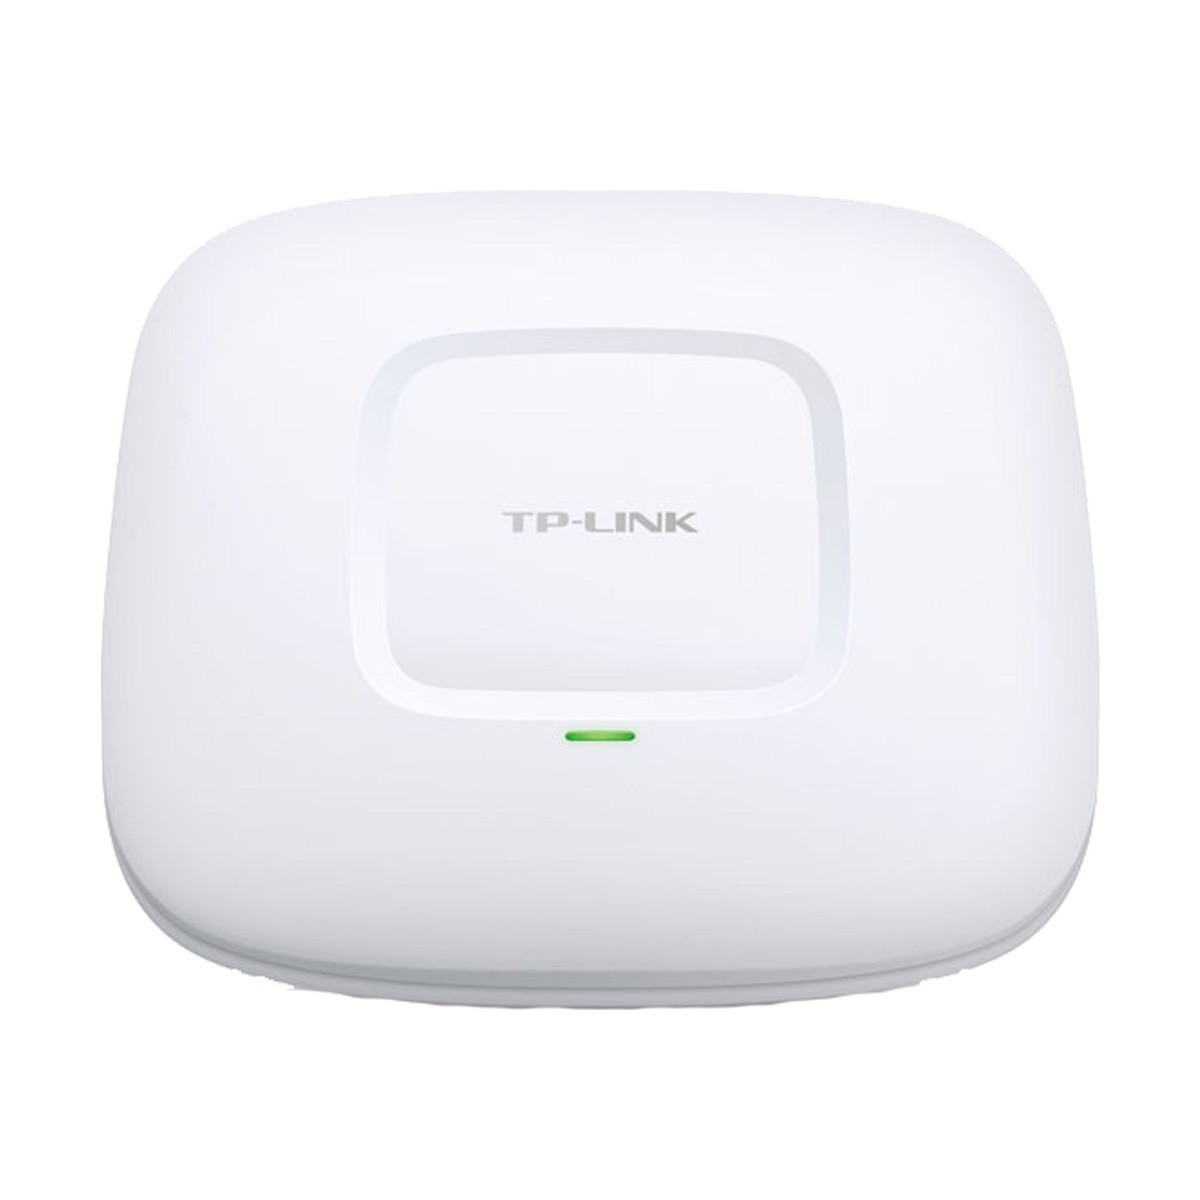 Tp Link Eap115 V4x Default Password Login Manuals And Reset Wireless Access Point Eap 110 Thumbnail For The Router With 300mbps Wifi